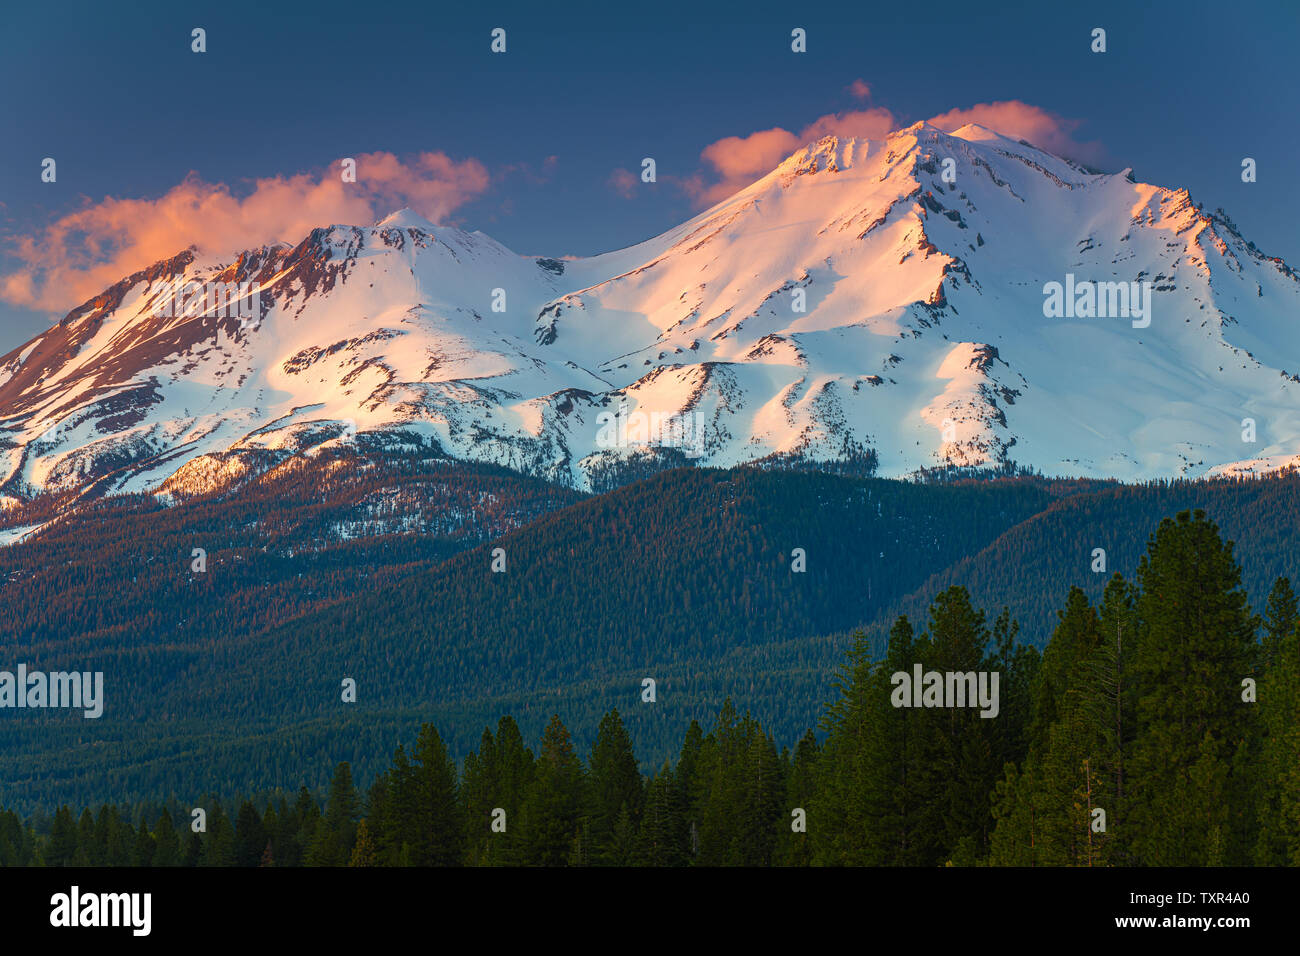 View on Mount Shasta (from Lake Siskiyou). Mt Shasta is a volcano at the southern end of the Cascade Range in Siskiyou County, California. At an eleva - Stock Image